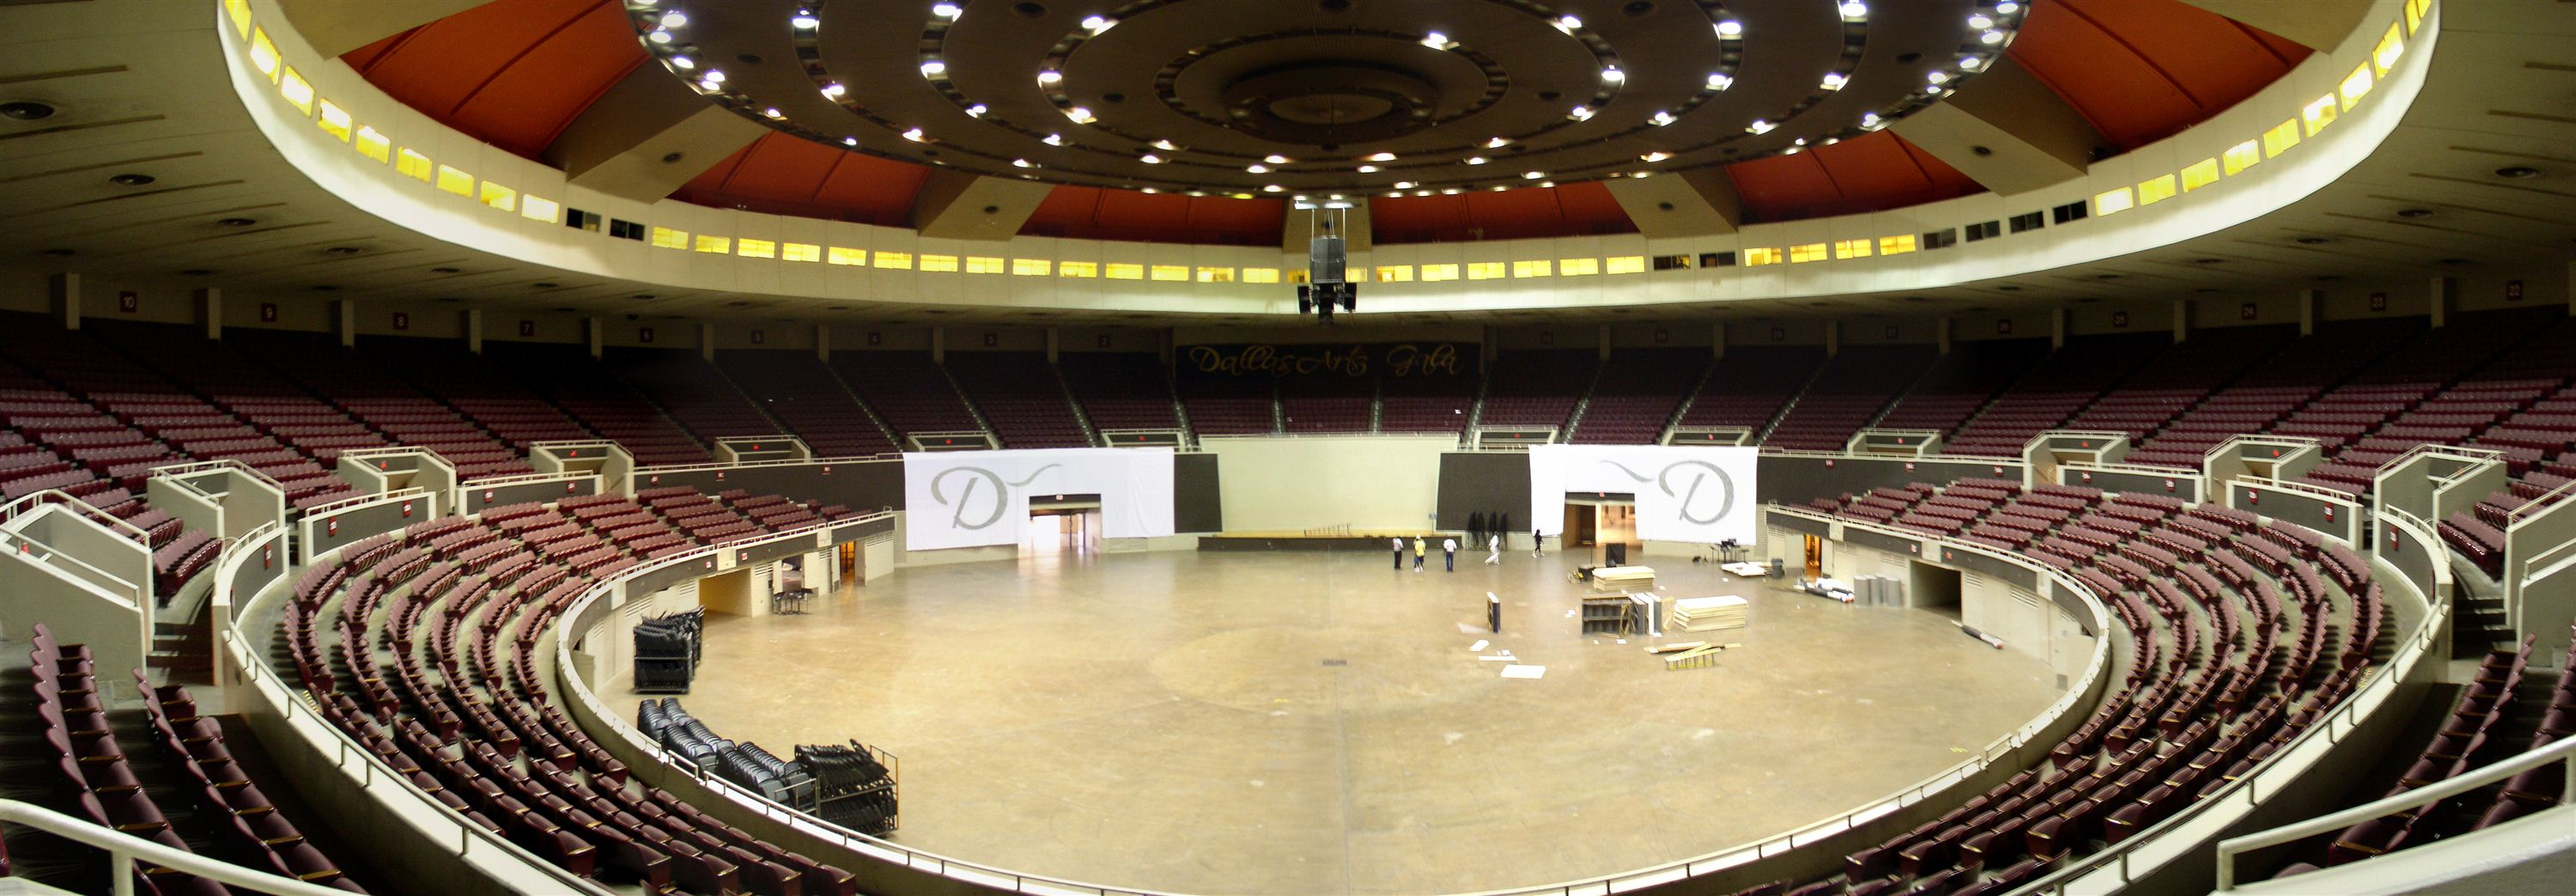 Location Photos Of Dallas Convention Center - Arena-1006